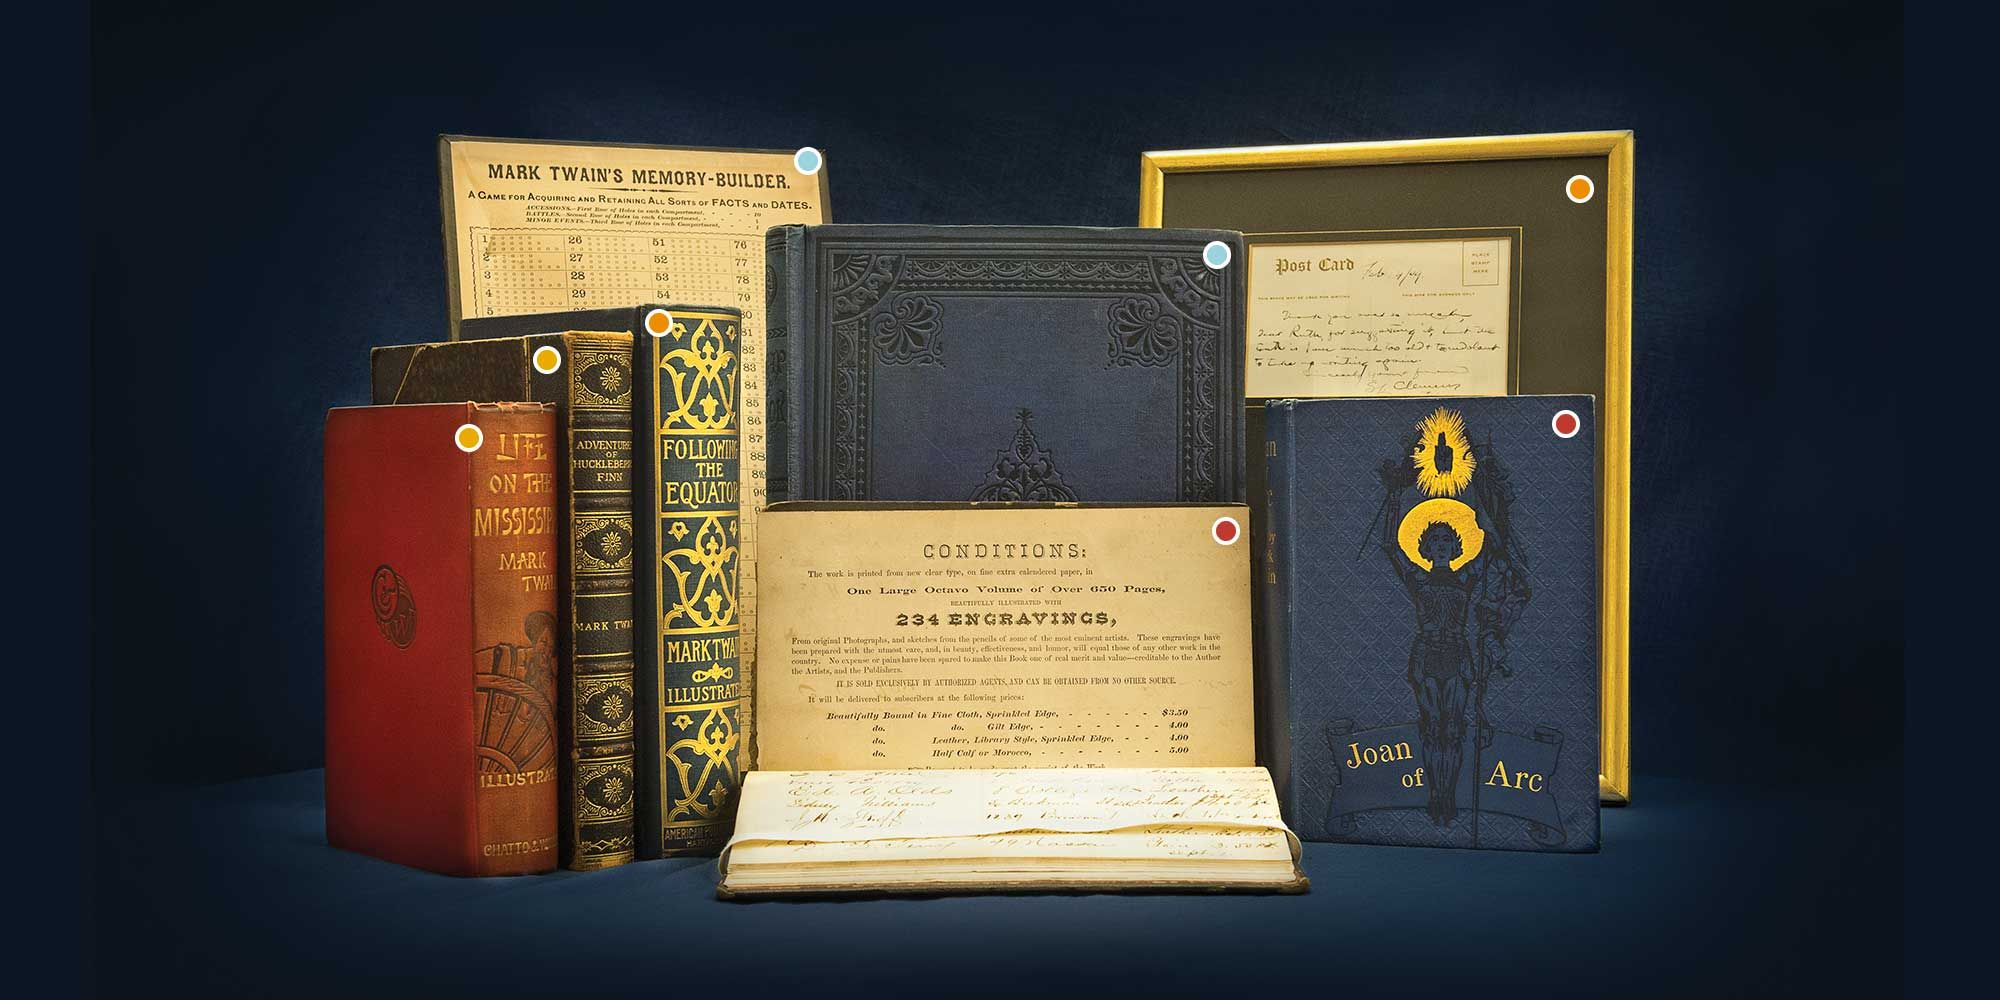 Books and items from the Mark Twain Collection at WVU Libraries.